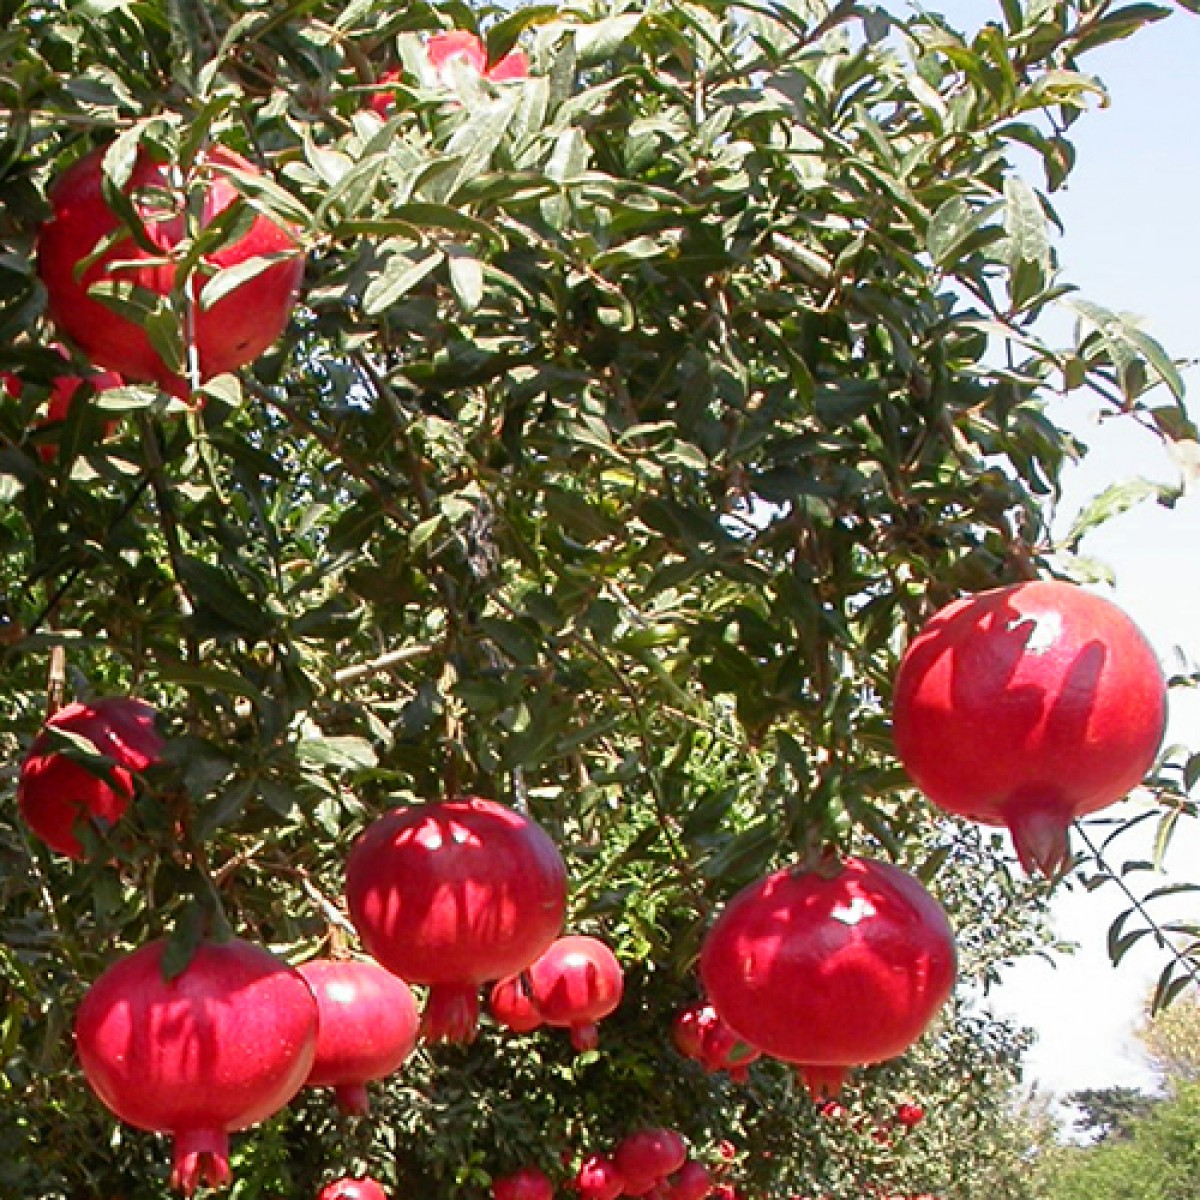 Exotic Fruit Trees : Seedless Pomegranates on orange tree garden, peach tree garden, apple tree garden, tea tree garden, orchard tree garden, peony tree garden, guava tree garden, rose tree garden, grape tree garden, olive tree garden, fruit tree garden, cherry tree garden, japanese maple tree garden, pine tree garden, white tree garden, pepper tree garden, coconut tree garden, mango tree garden, lilac tree garden, raspberry tree garden,